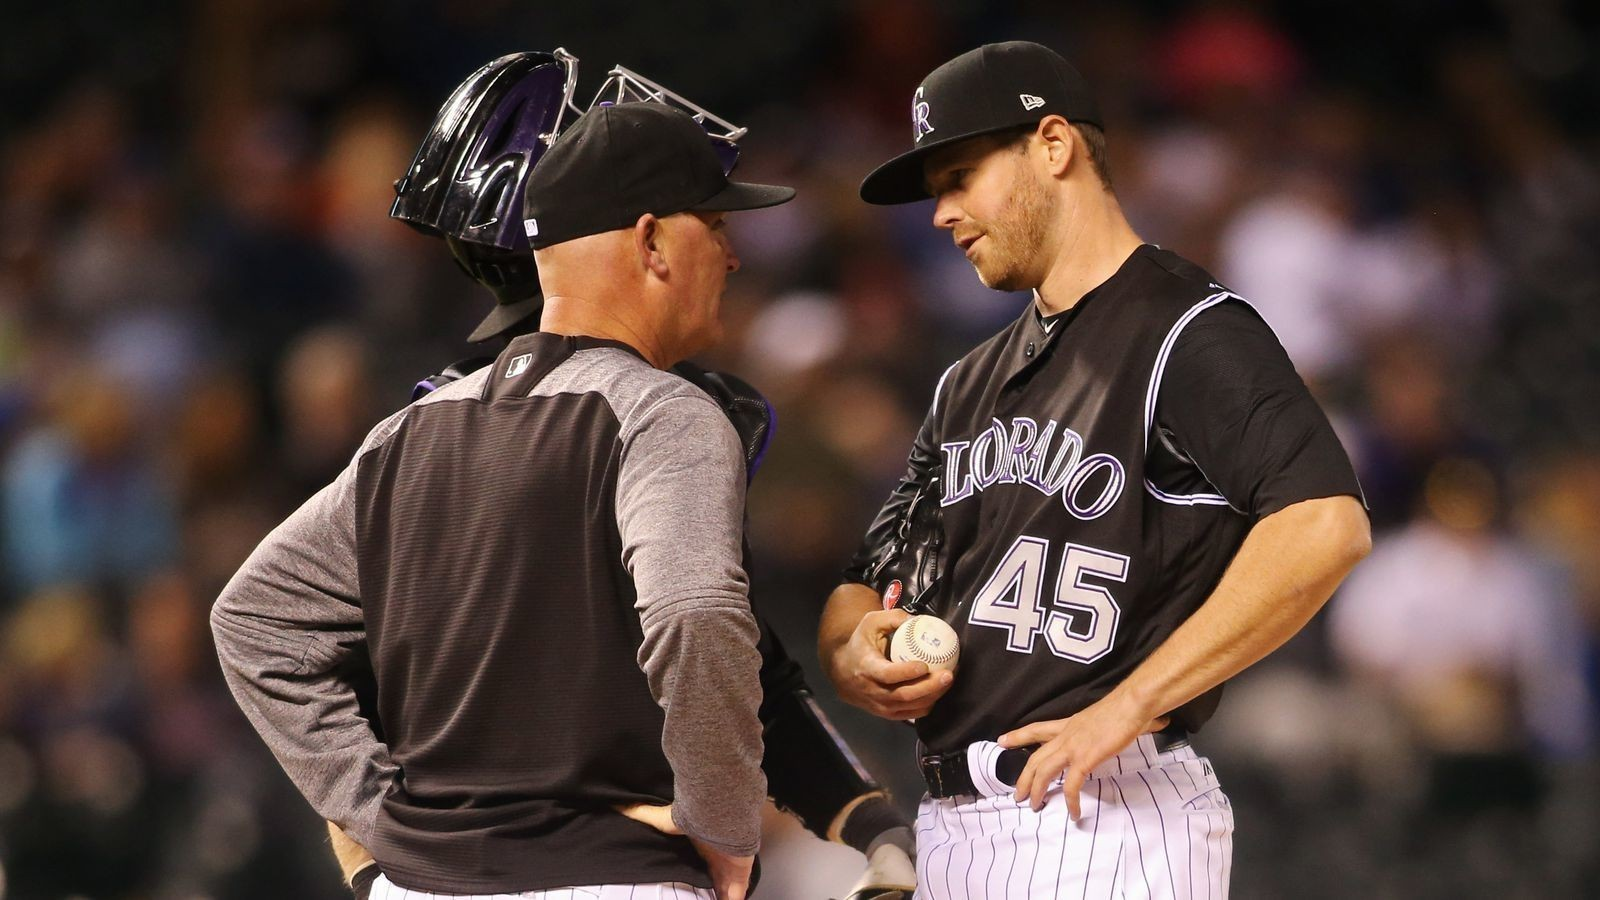 Colorado Rockies pitching coaches Steve Foster, Darren Holmes guiding young staff to a strong start in 2017